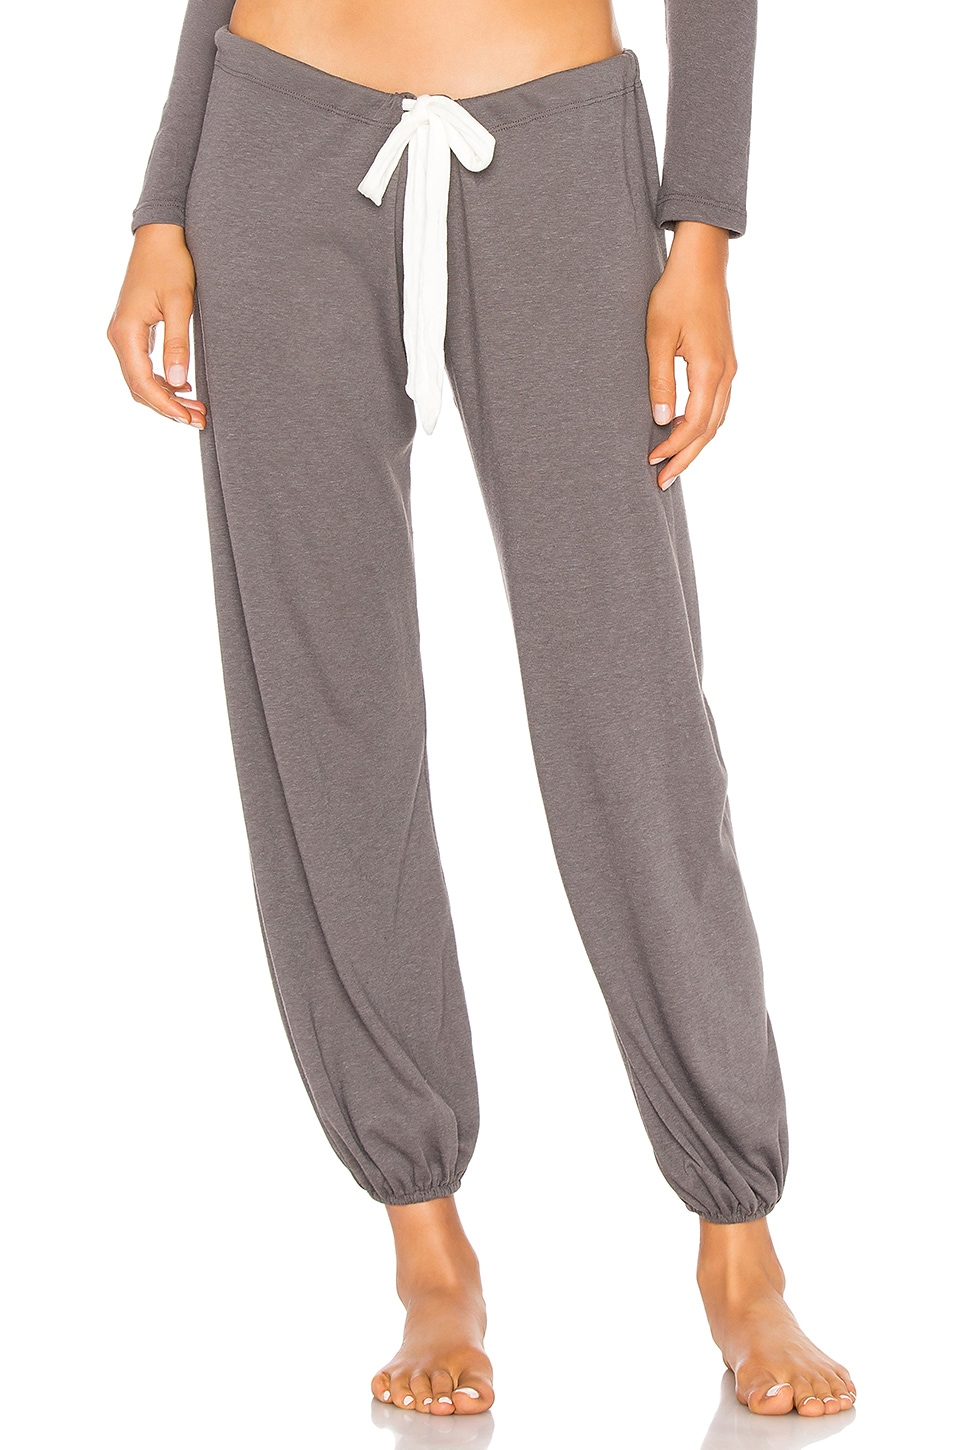 eberjey PANTALON HEATHER